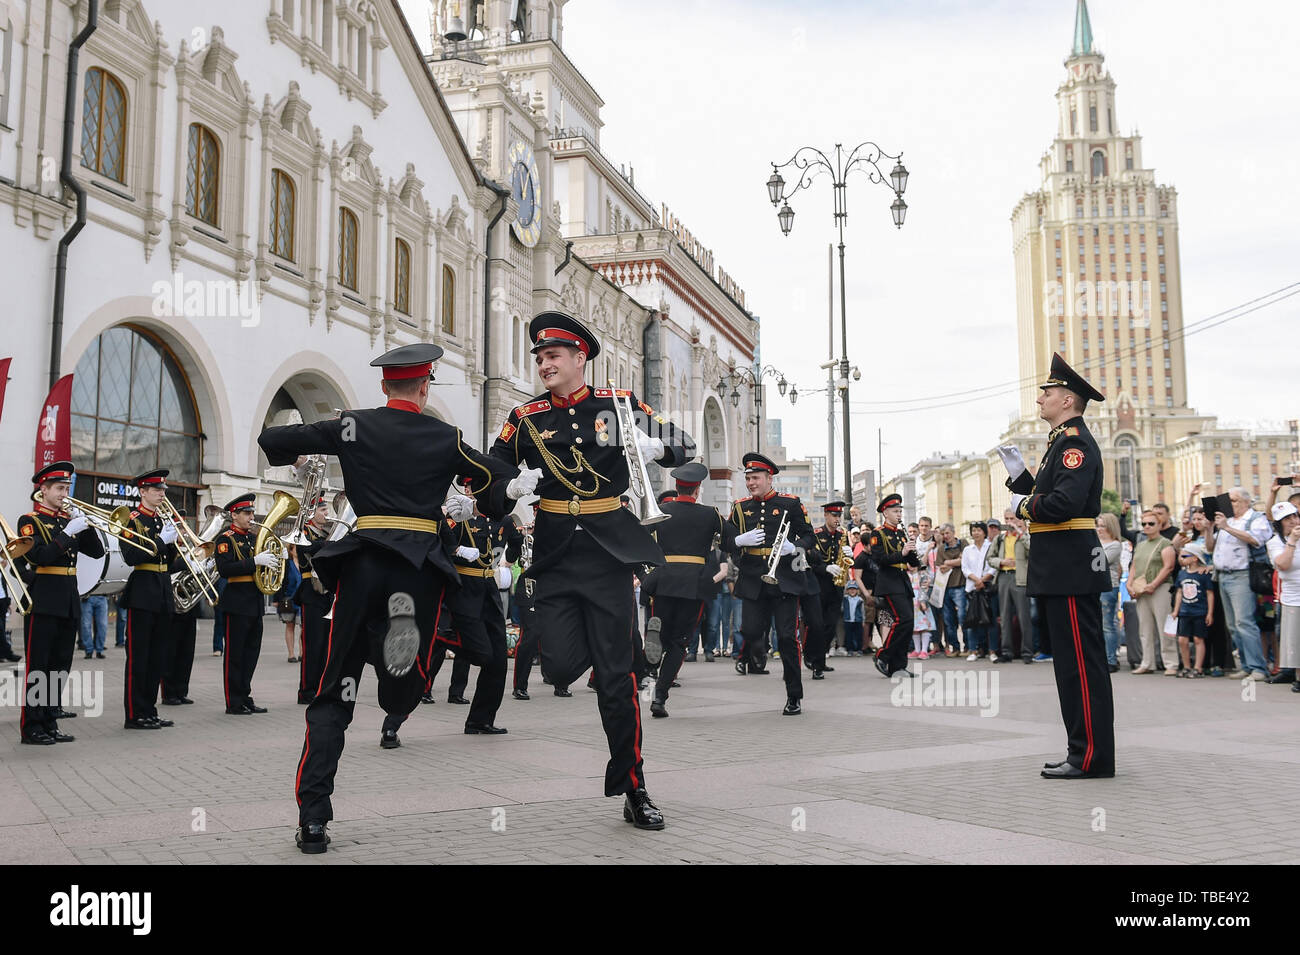 Military Music Stock Photos & Military Music Stock Images